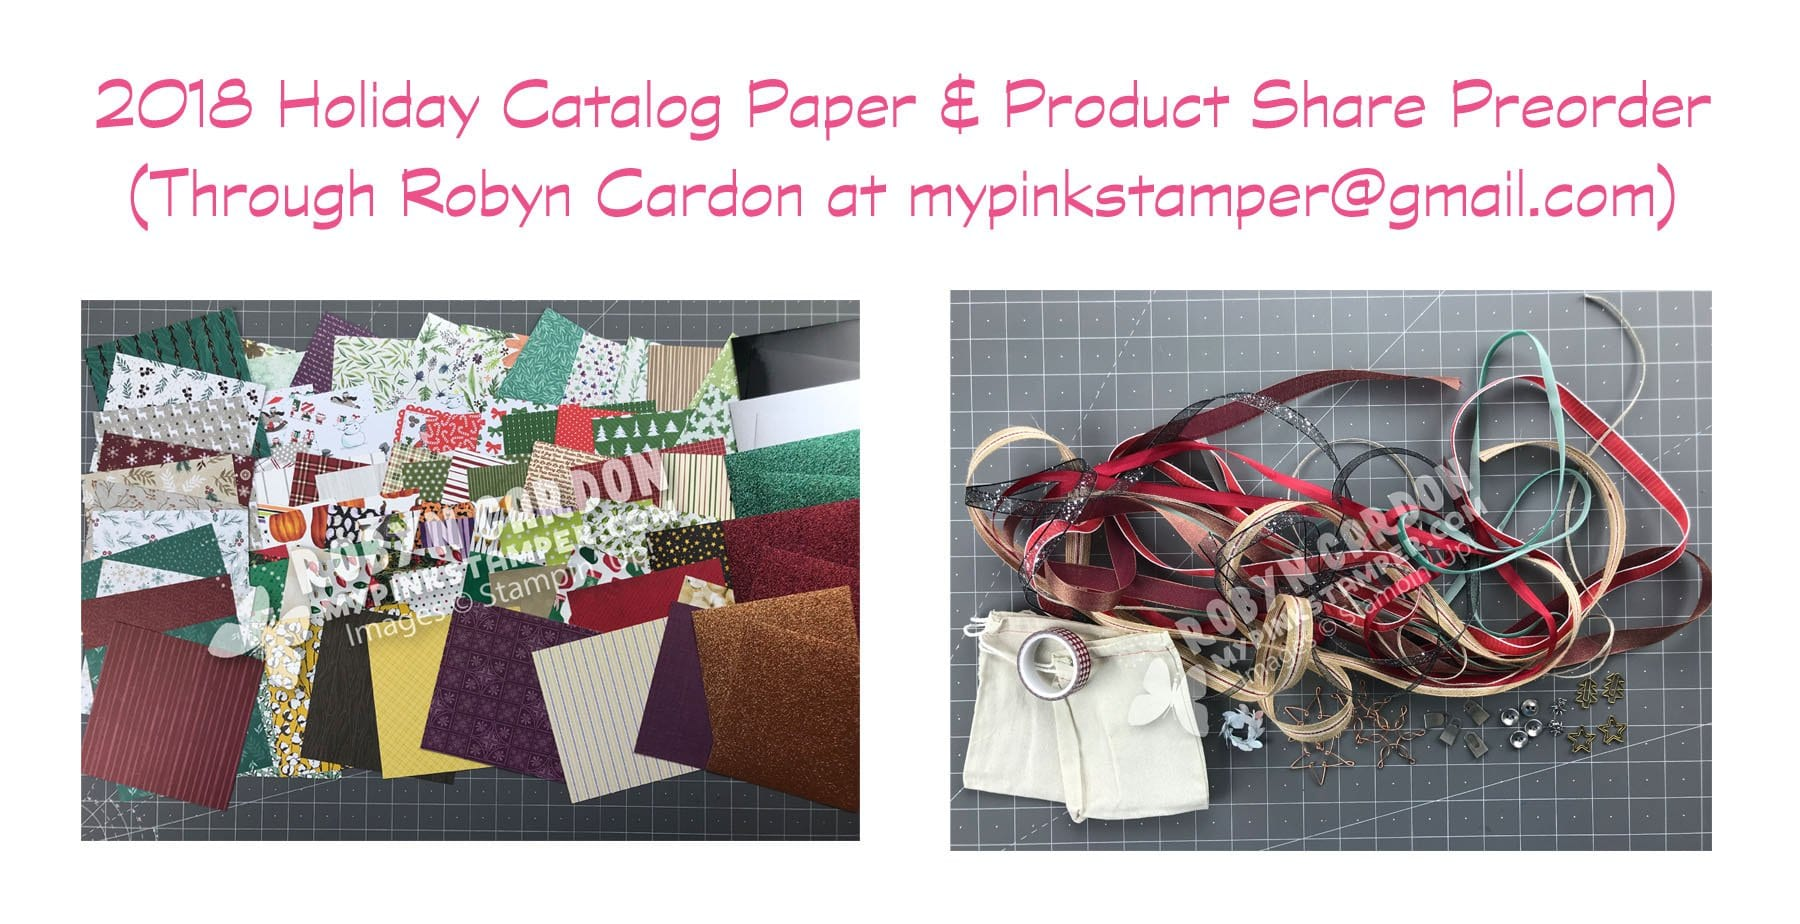 2018 Holiday Catalog Paper & Product Share Preorder